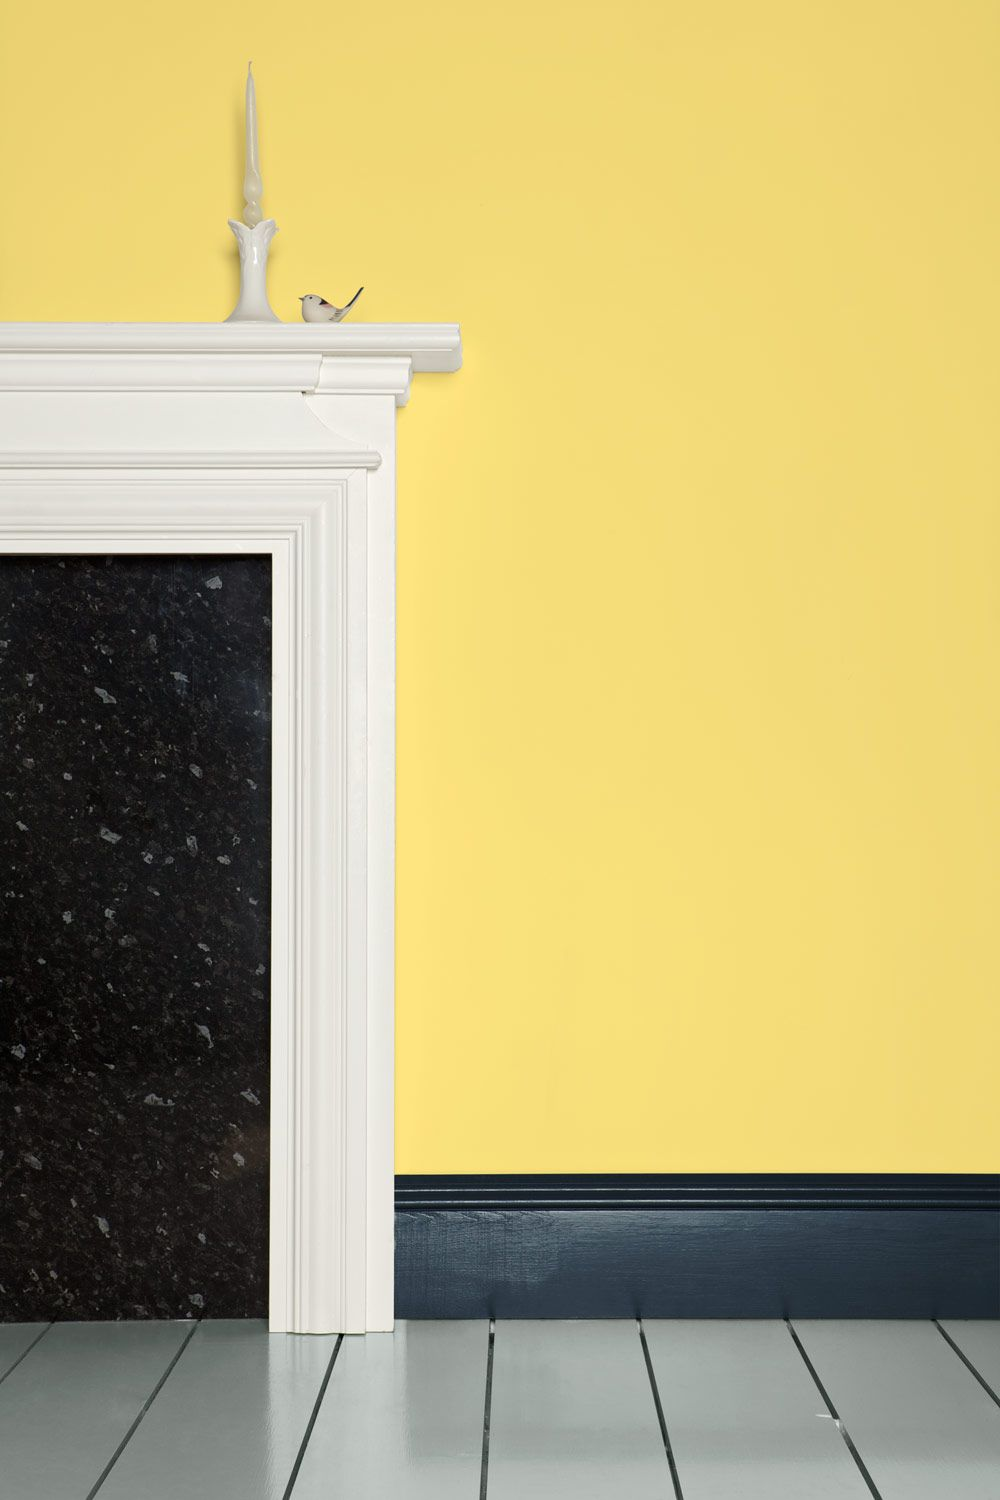 farrow ball dayroom yellow paint and wallpaper in 2019 peinture id es pour la maison. Black Bedroom Furniture Sets. Home Design Ideas